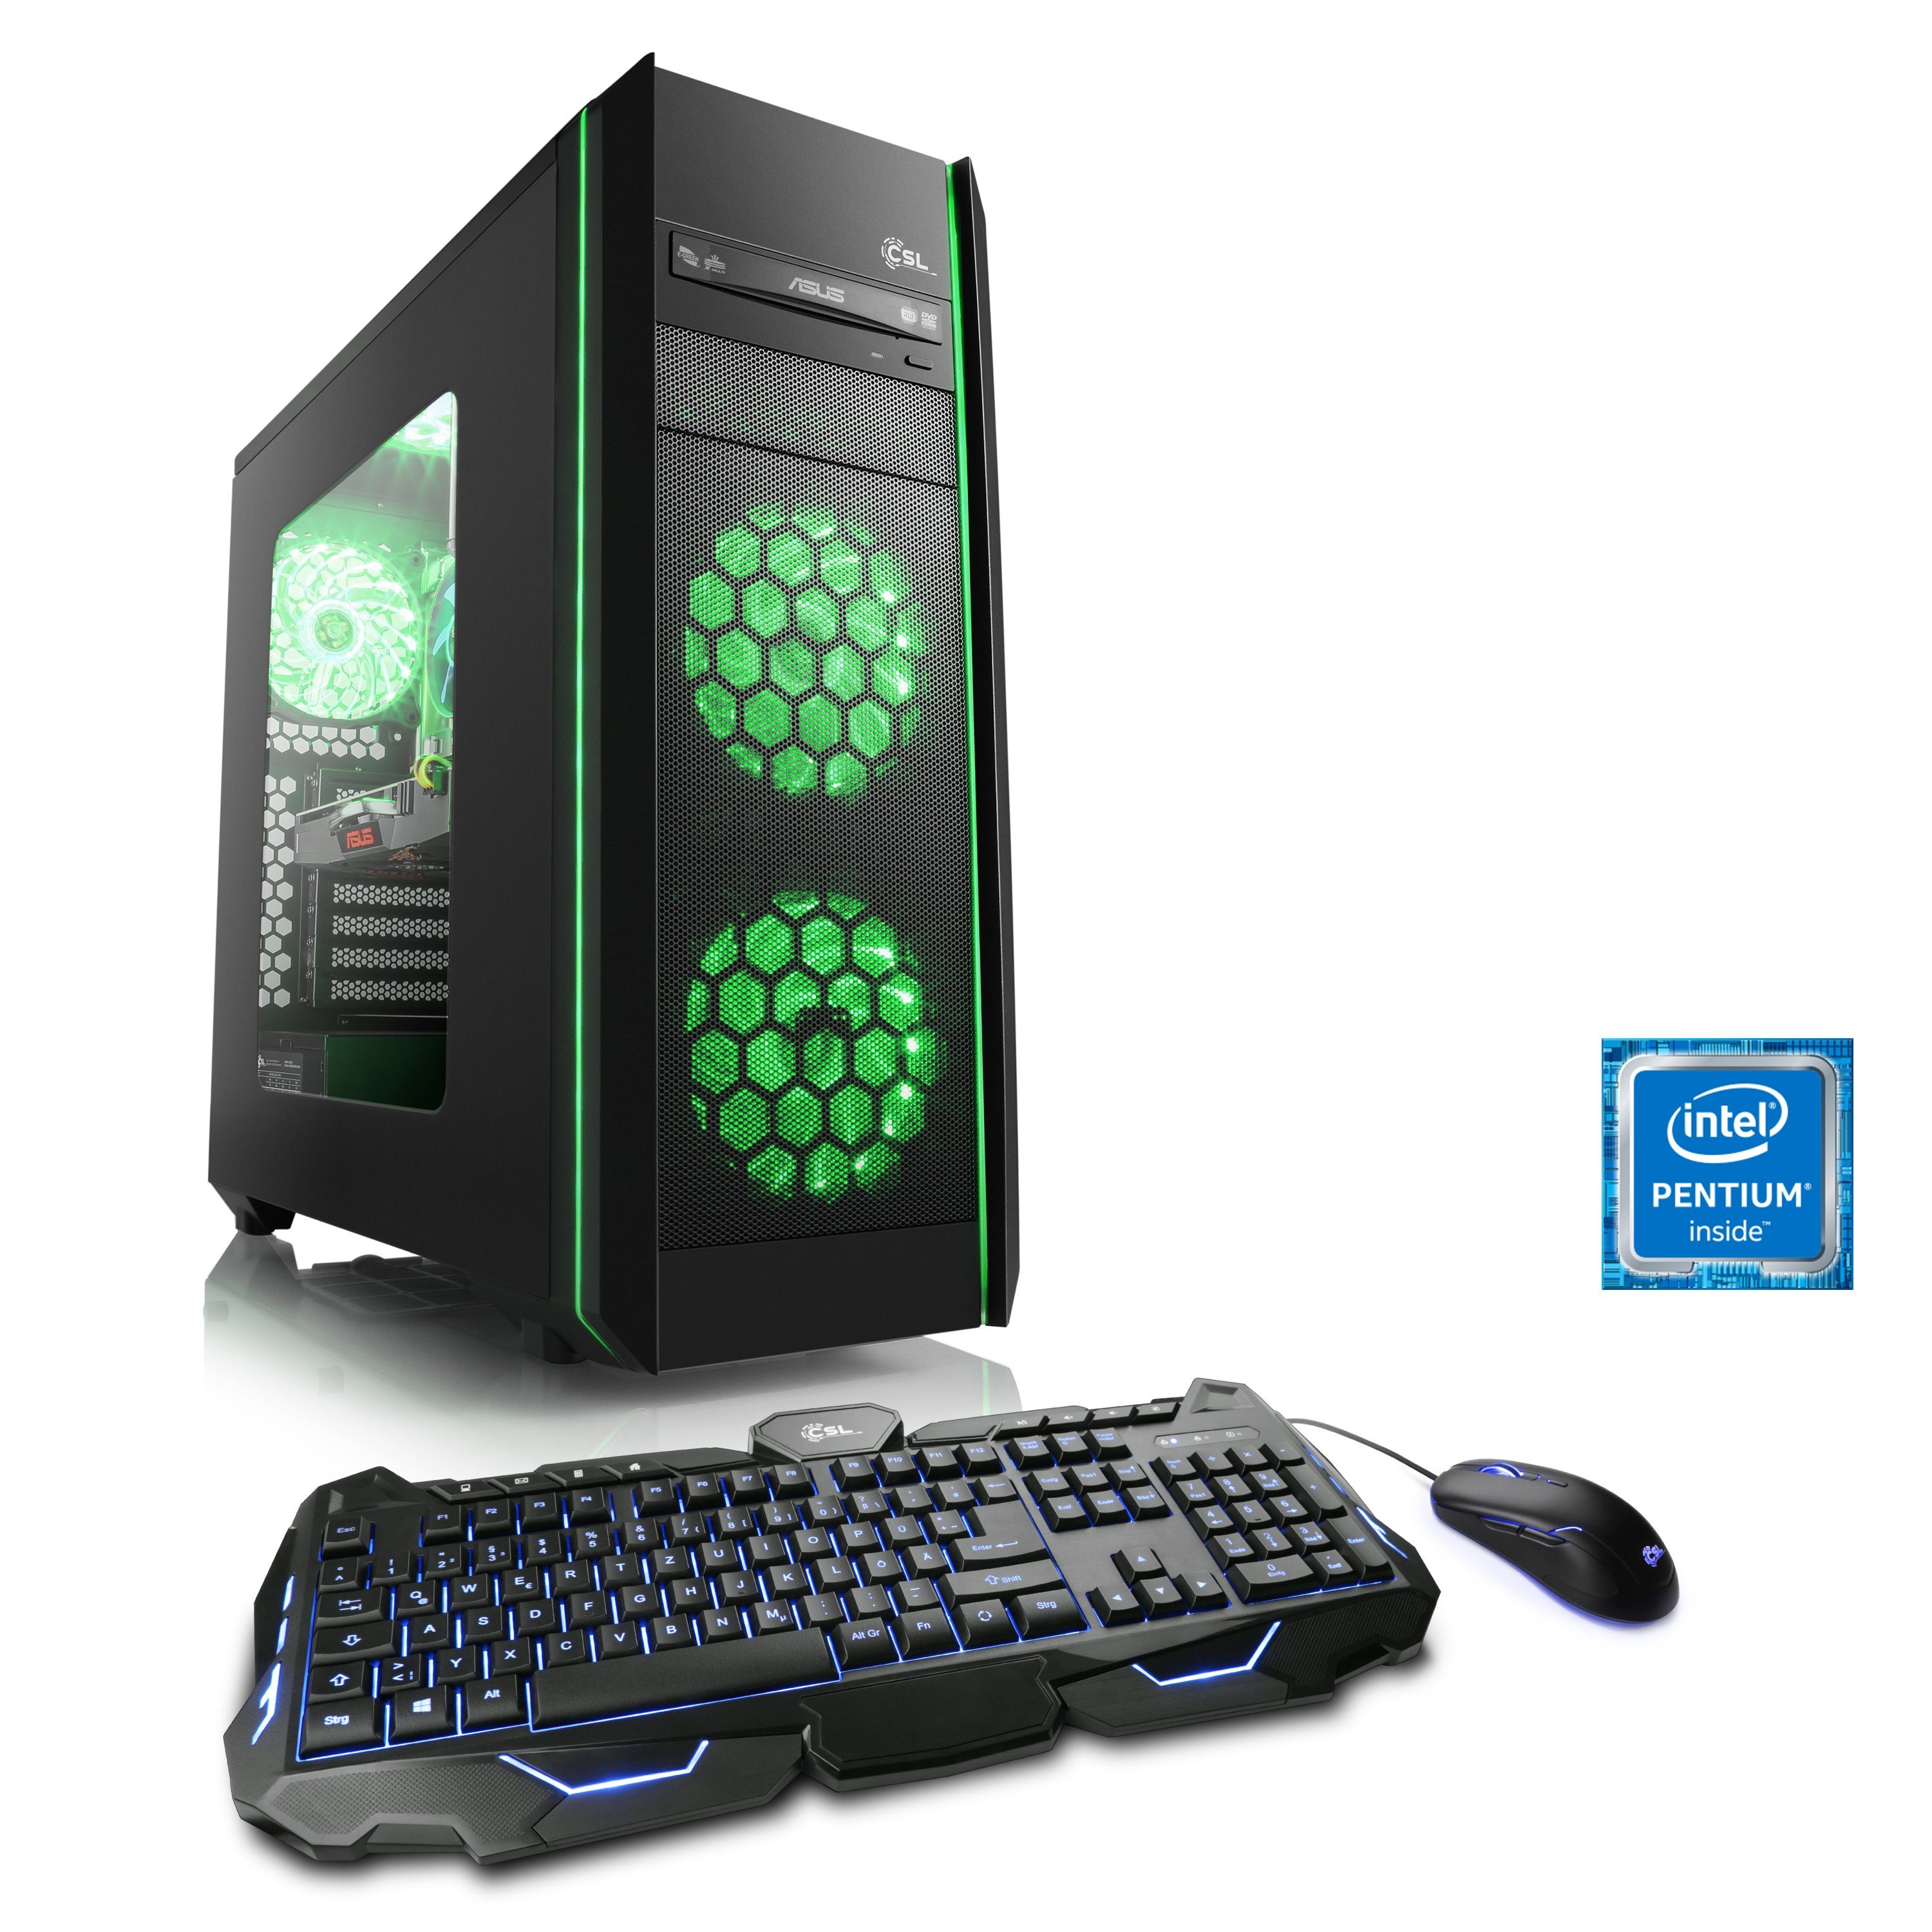 CSL Gaming PC | Pentium G4560 | GeForce GTX 1050 Ti | 8 GB DDR4 RAM »Speed T1816 Windows 10 Home«